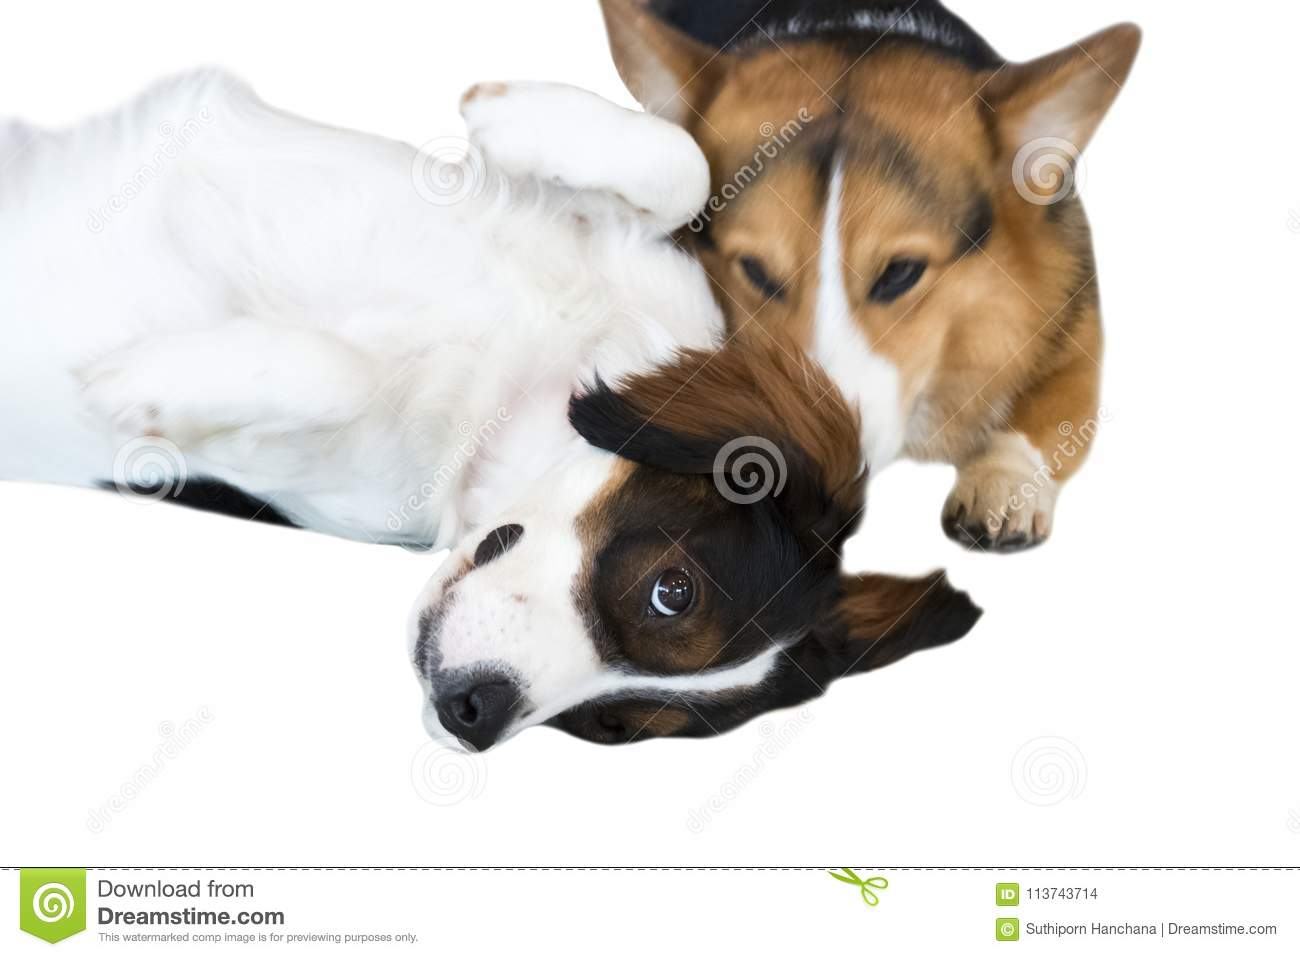 Pembroke Welsh Corgi and tricolor Australian isolate on white background. Clipping path